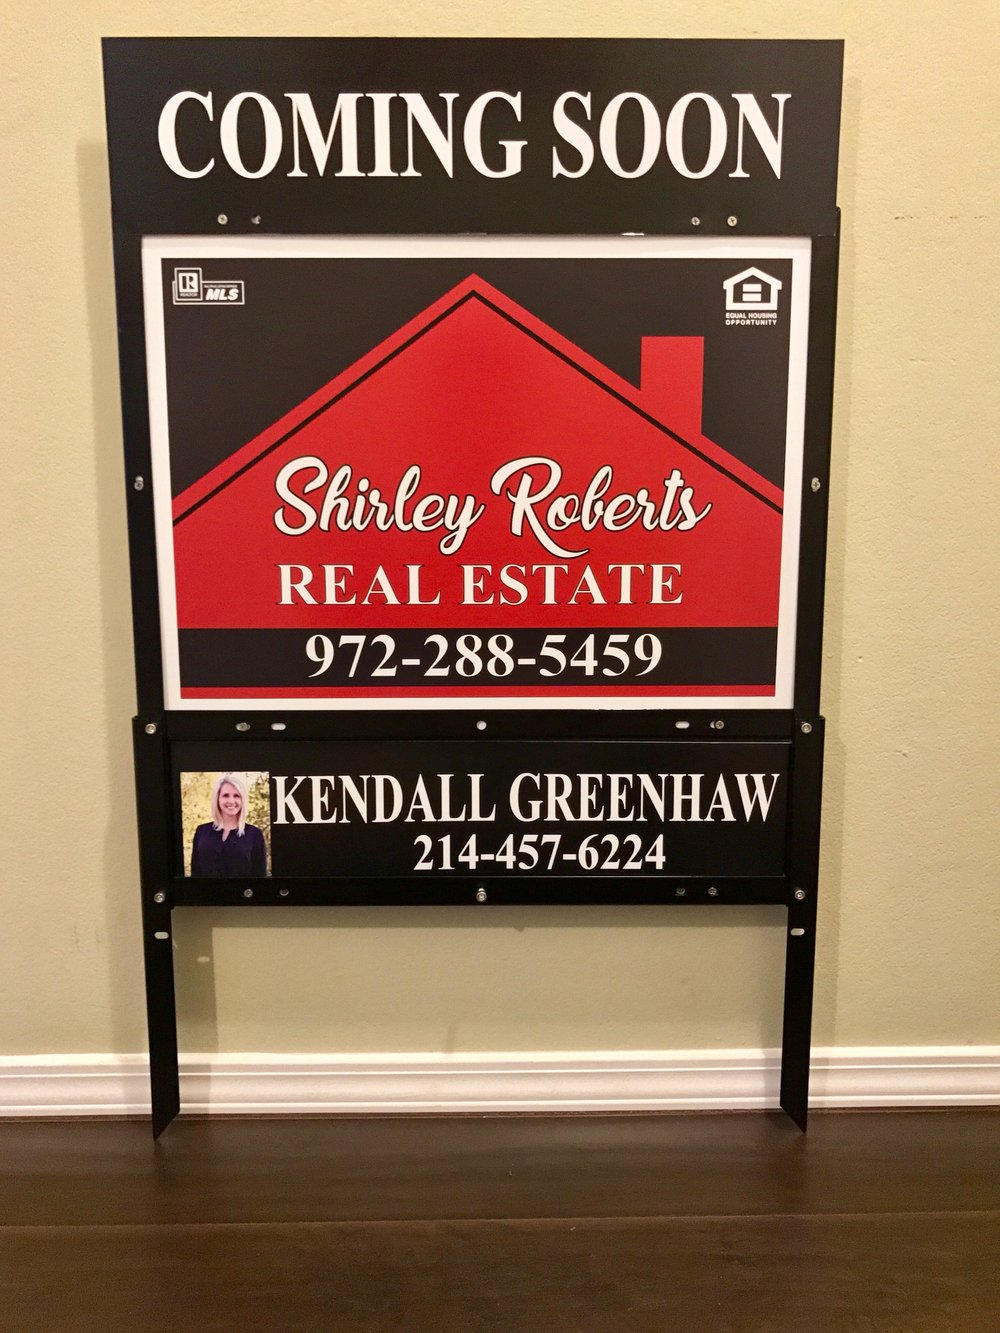 Greenhaw Kendall-Shirley Roberts Real Estate.jpg